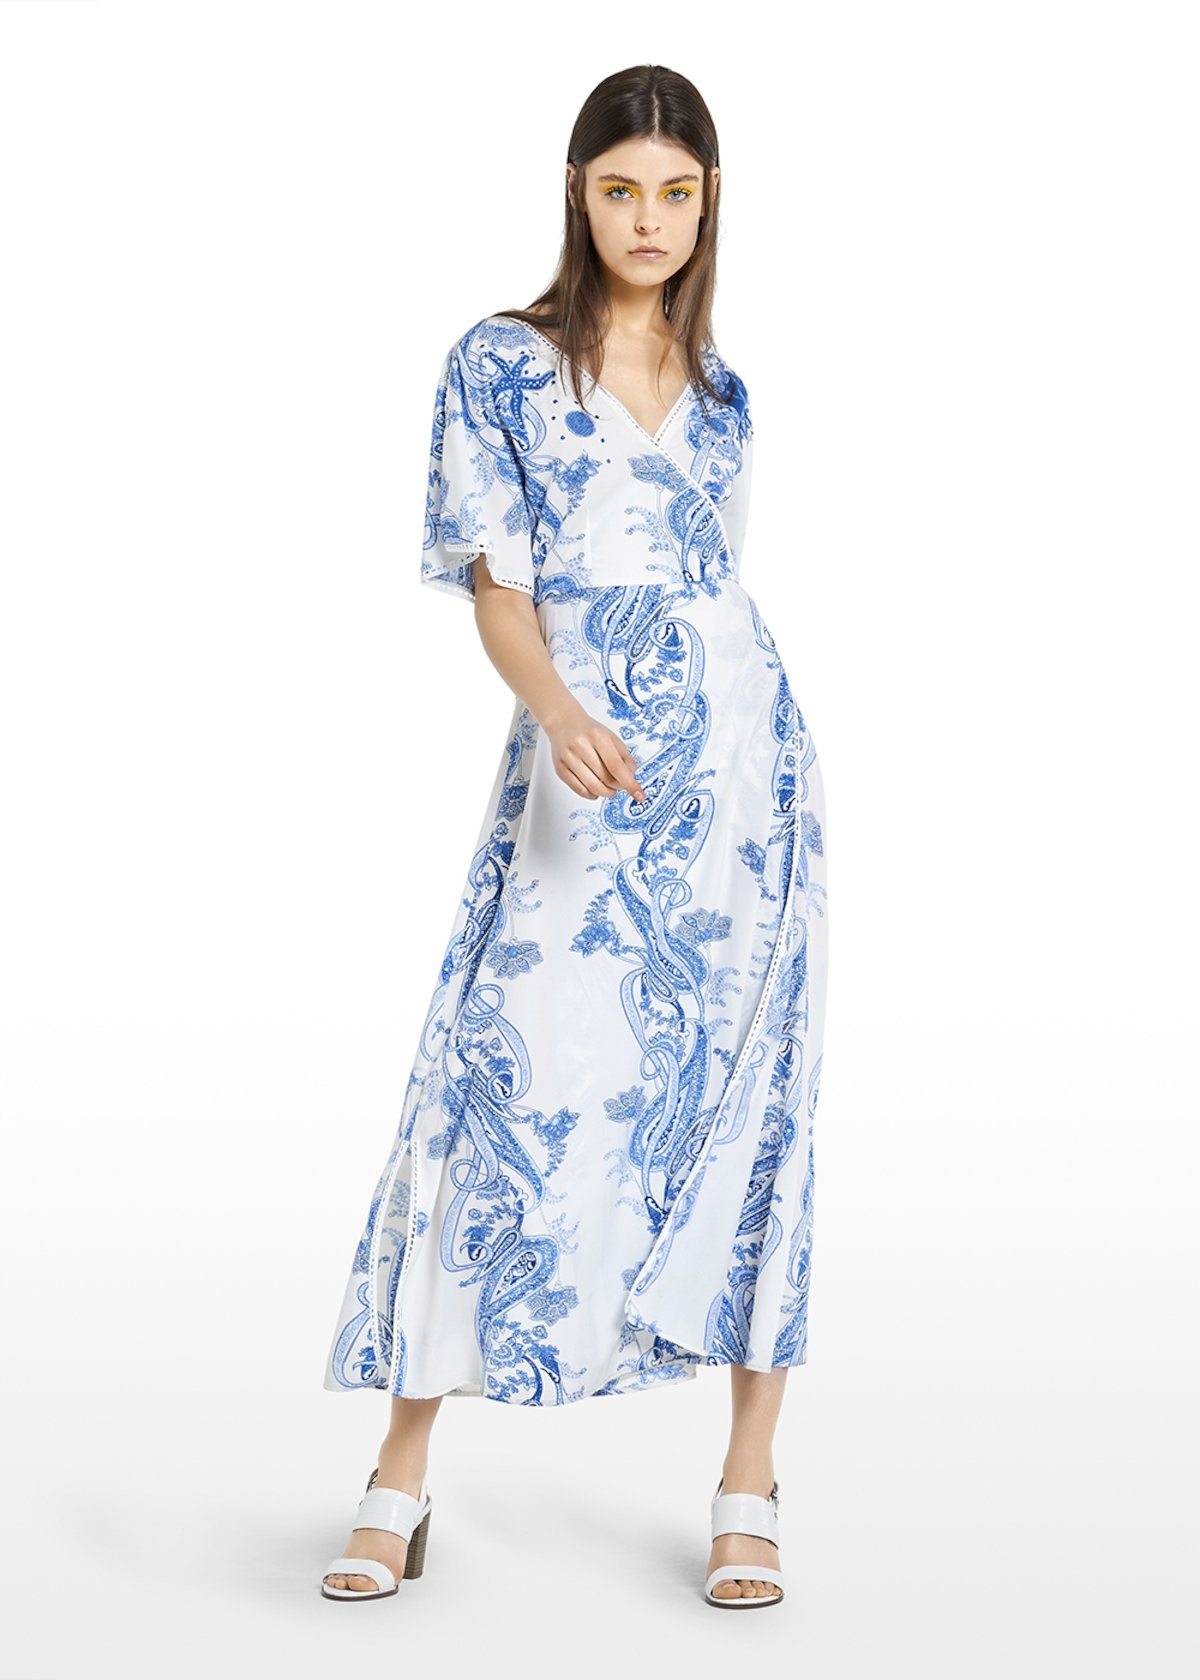 Arnold crossover long dress - White\ Mineral\ Fantasia - Woman